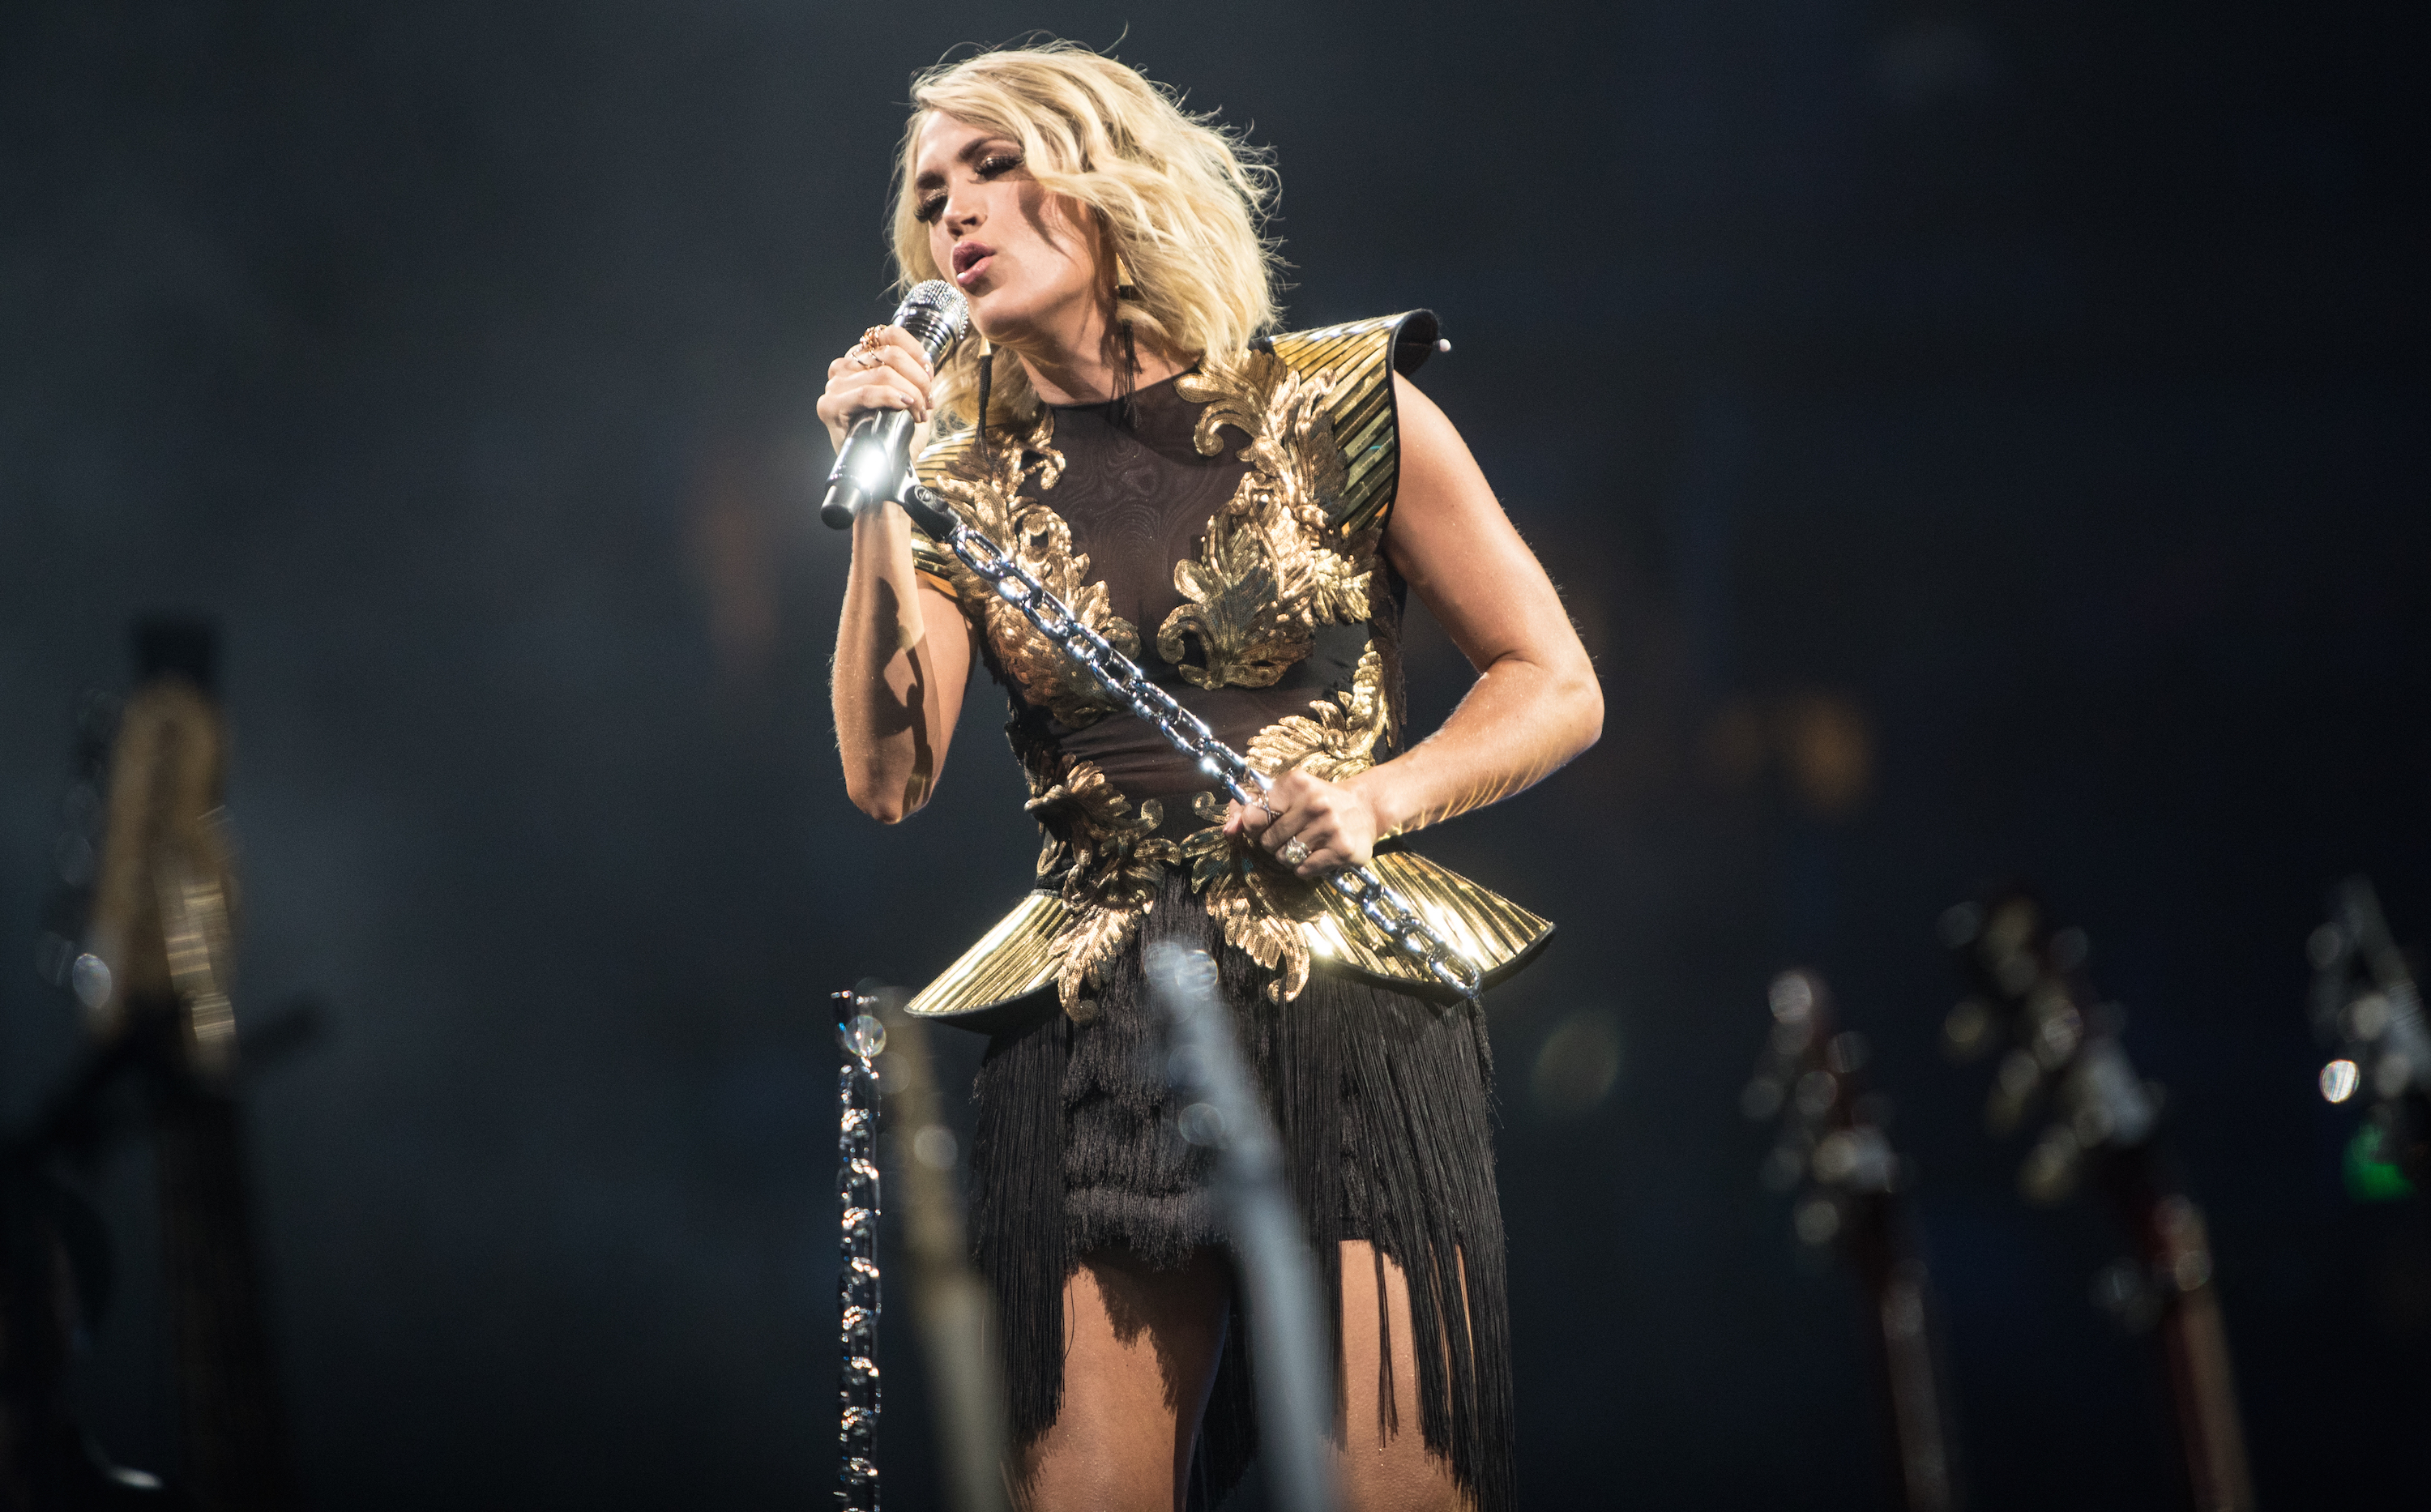 Carrie Underwood On Recovery From Multiple Injuries: 'I'm Doing Pretty Darn Good'